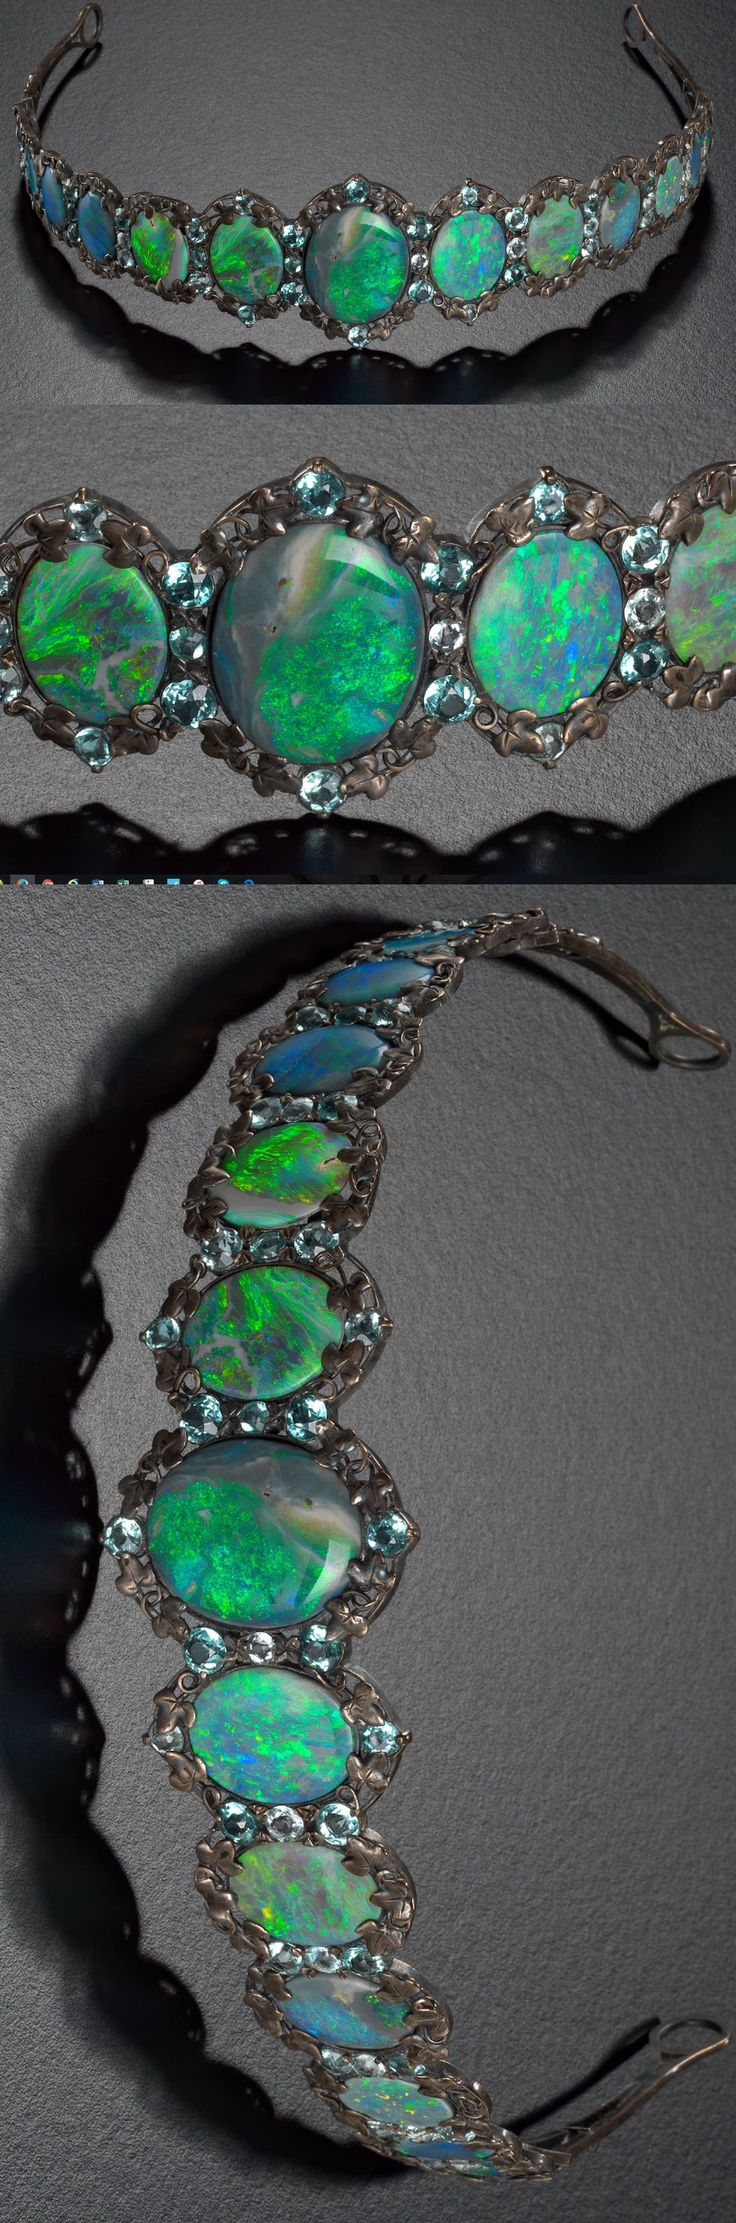 Tiara c1925. Silver, opals and Aquamarines. National Gallery, Victoria, Australia